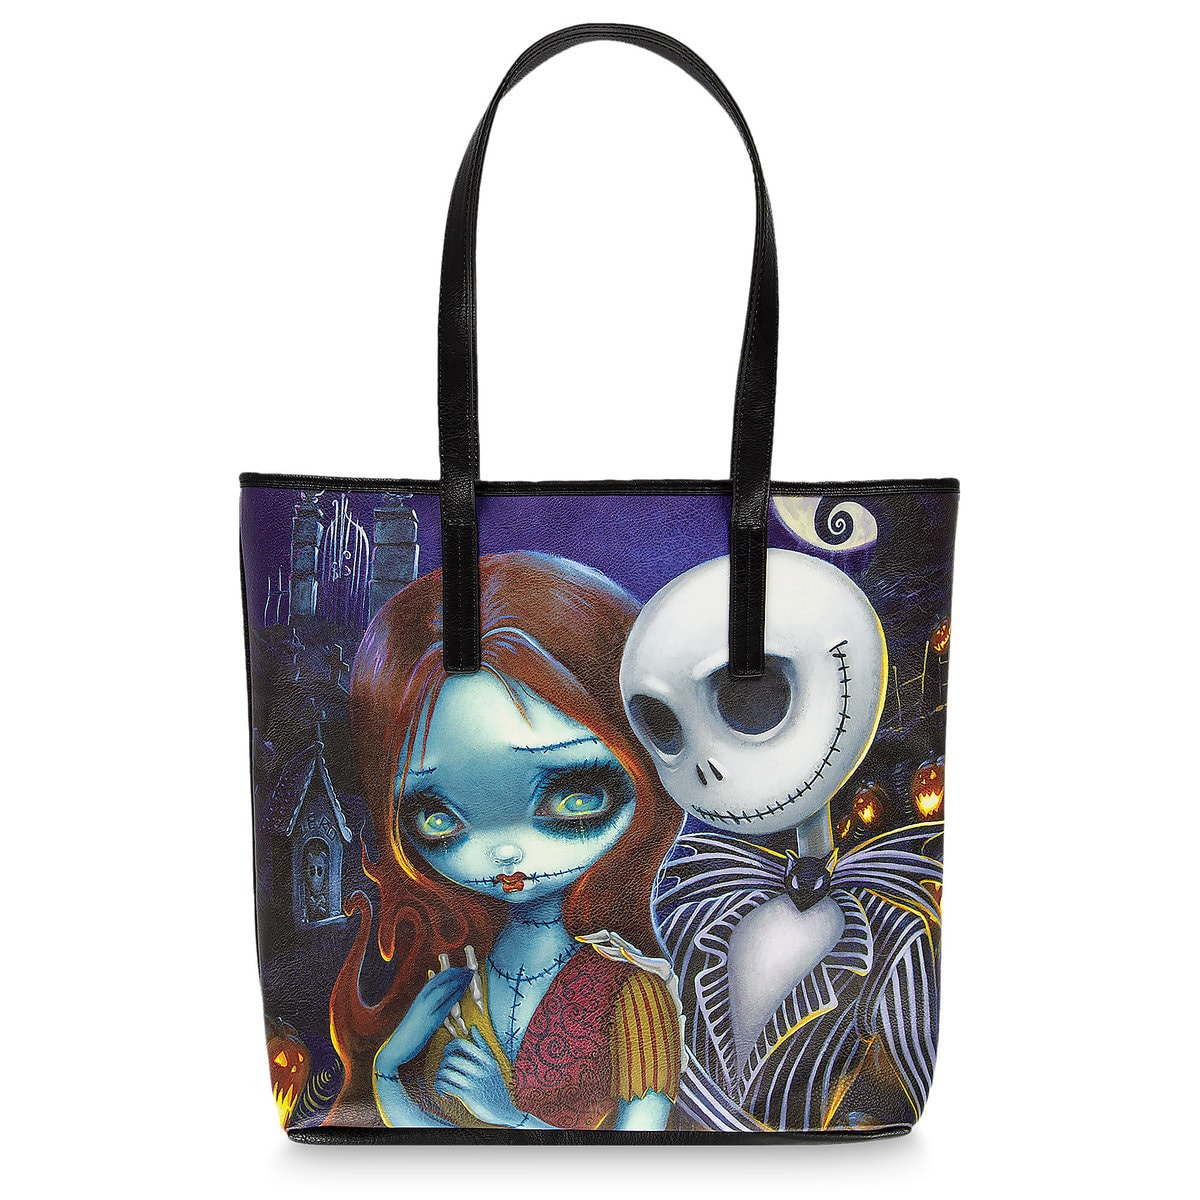 cfdb23f6b9c Product Image of The Nightmare Before Christmas Tote by Jasmine  Becket-Griffith   1